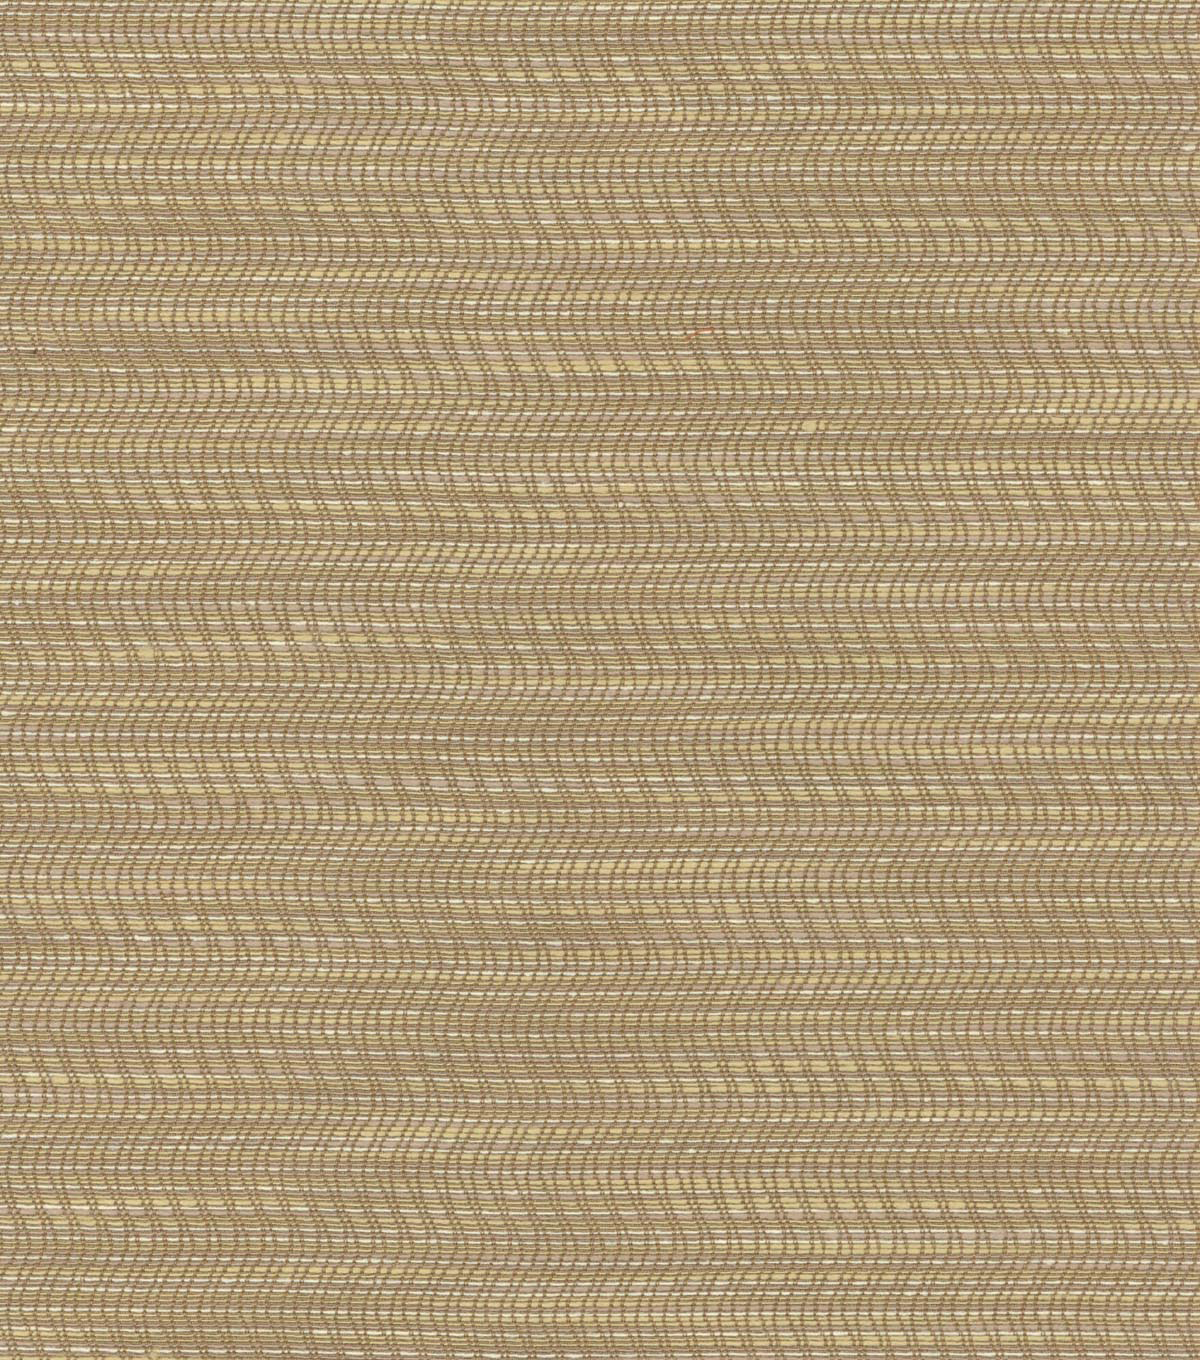 Home Decor 8\u0022x8\u0022 Swatch Fabric-PK Lifestyles Shimmy Mocha